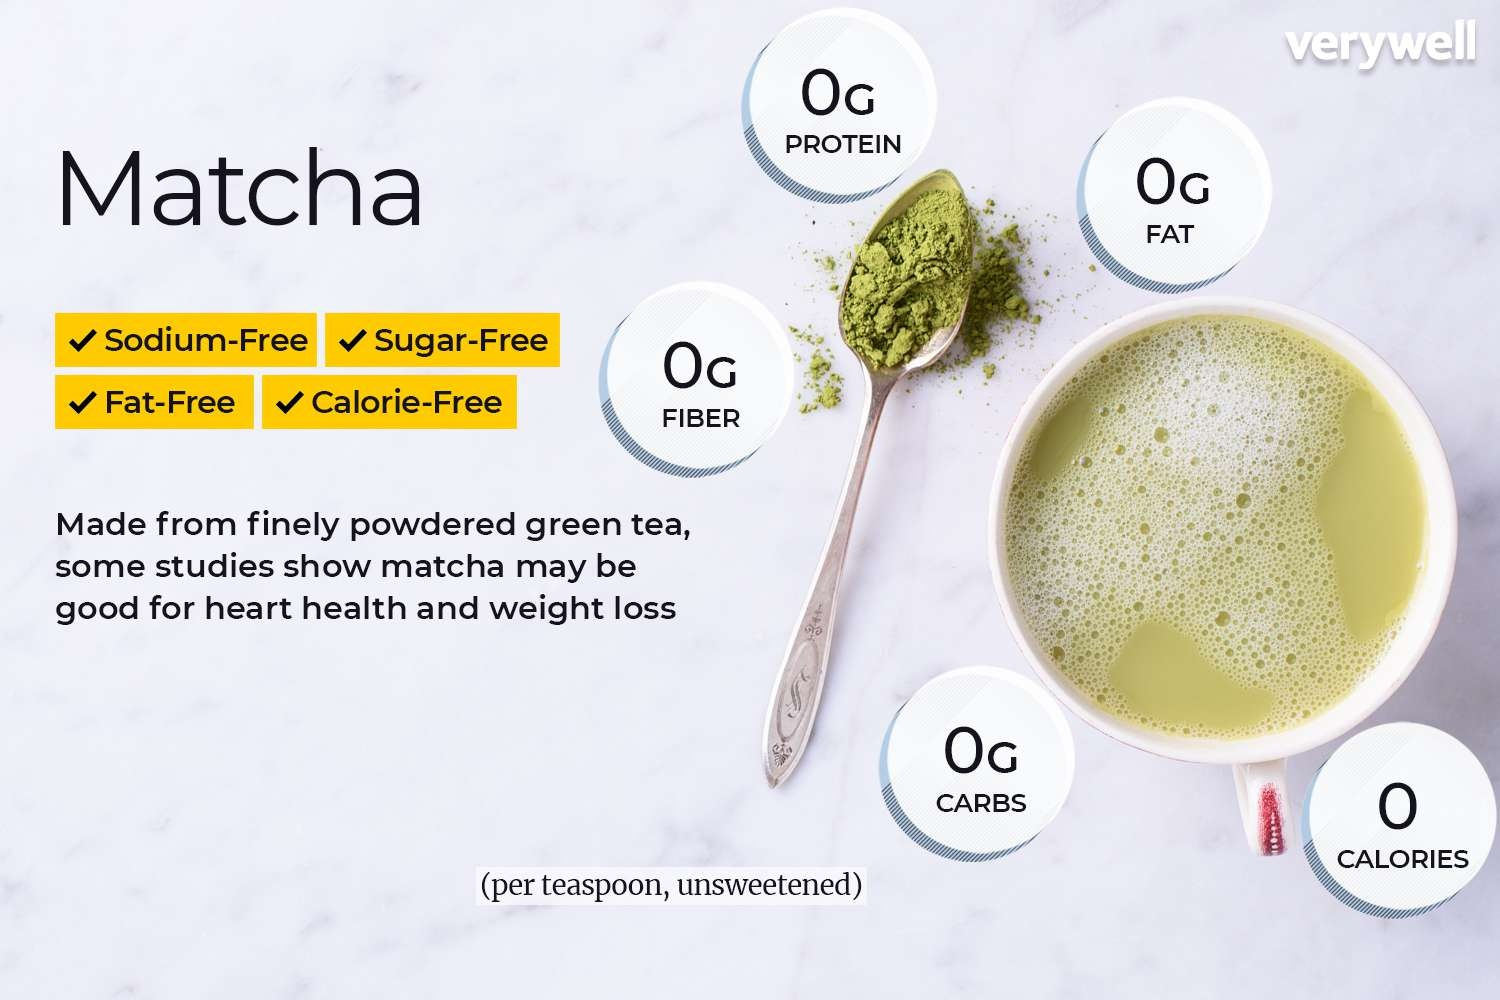 what are the benefits of matcha tea? - quora